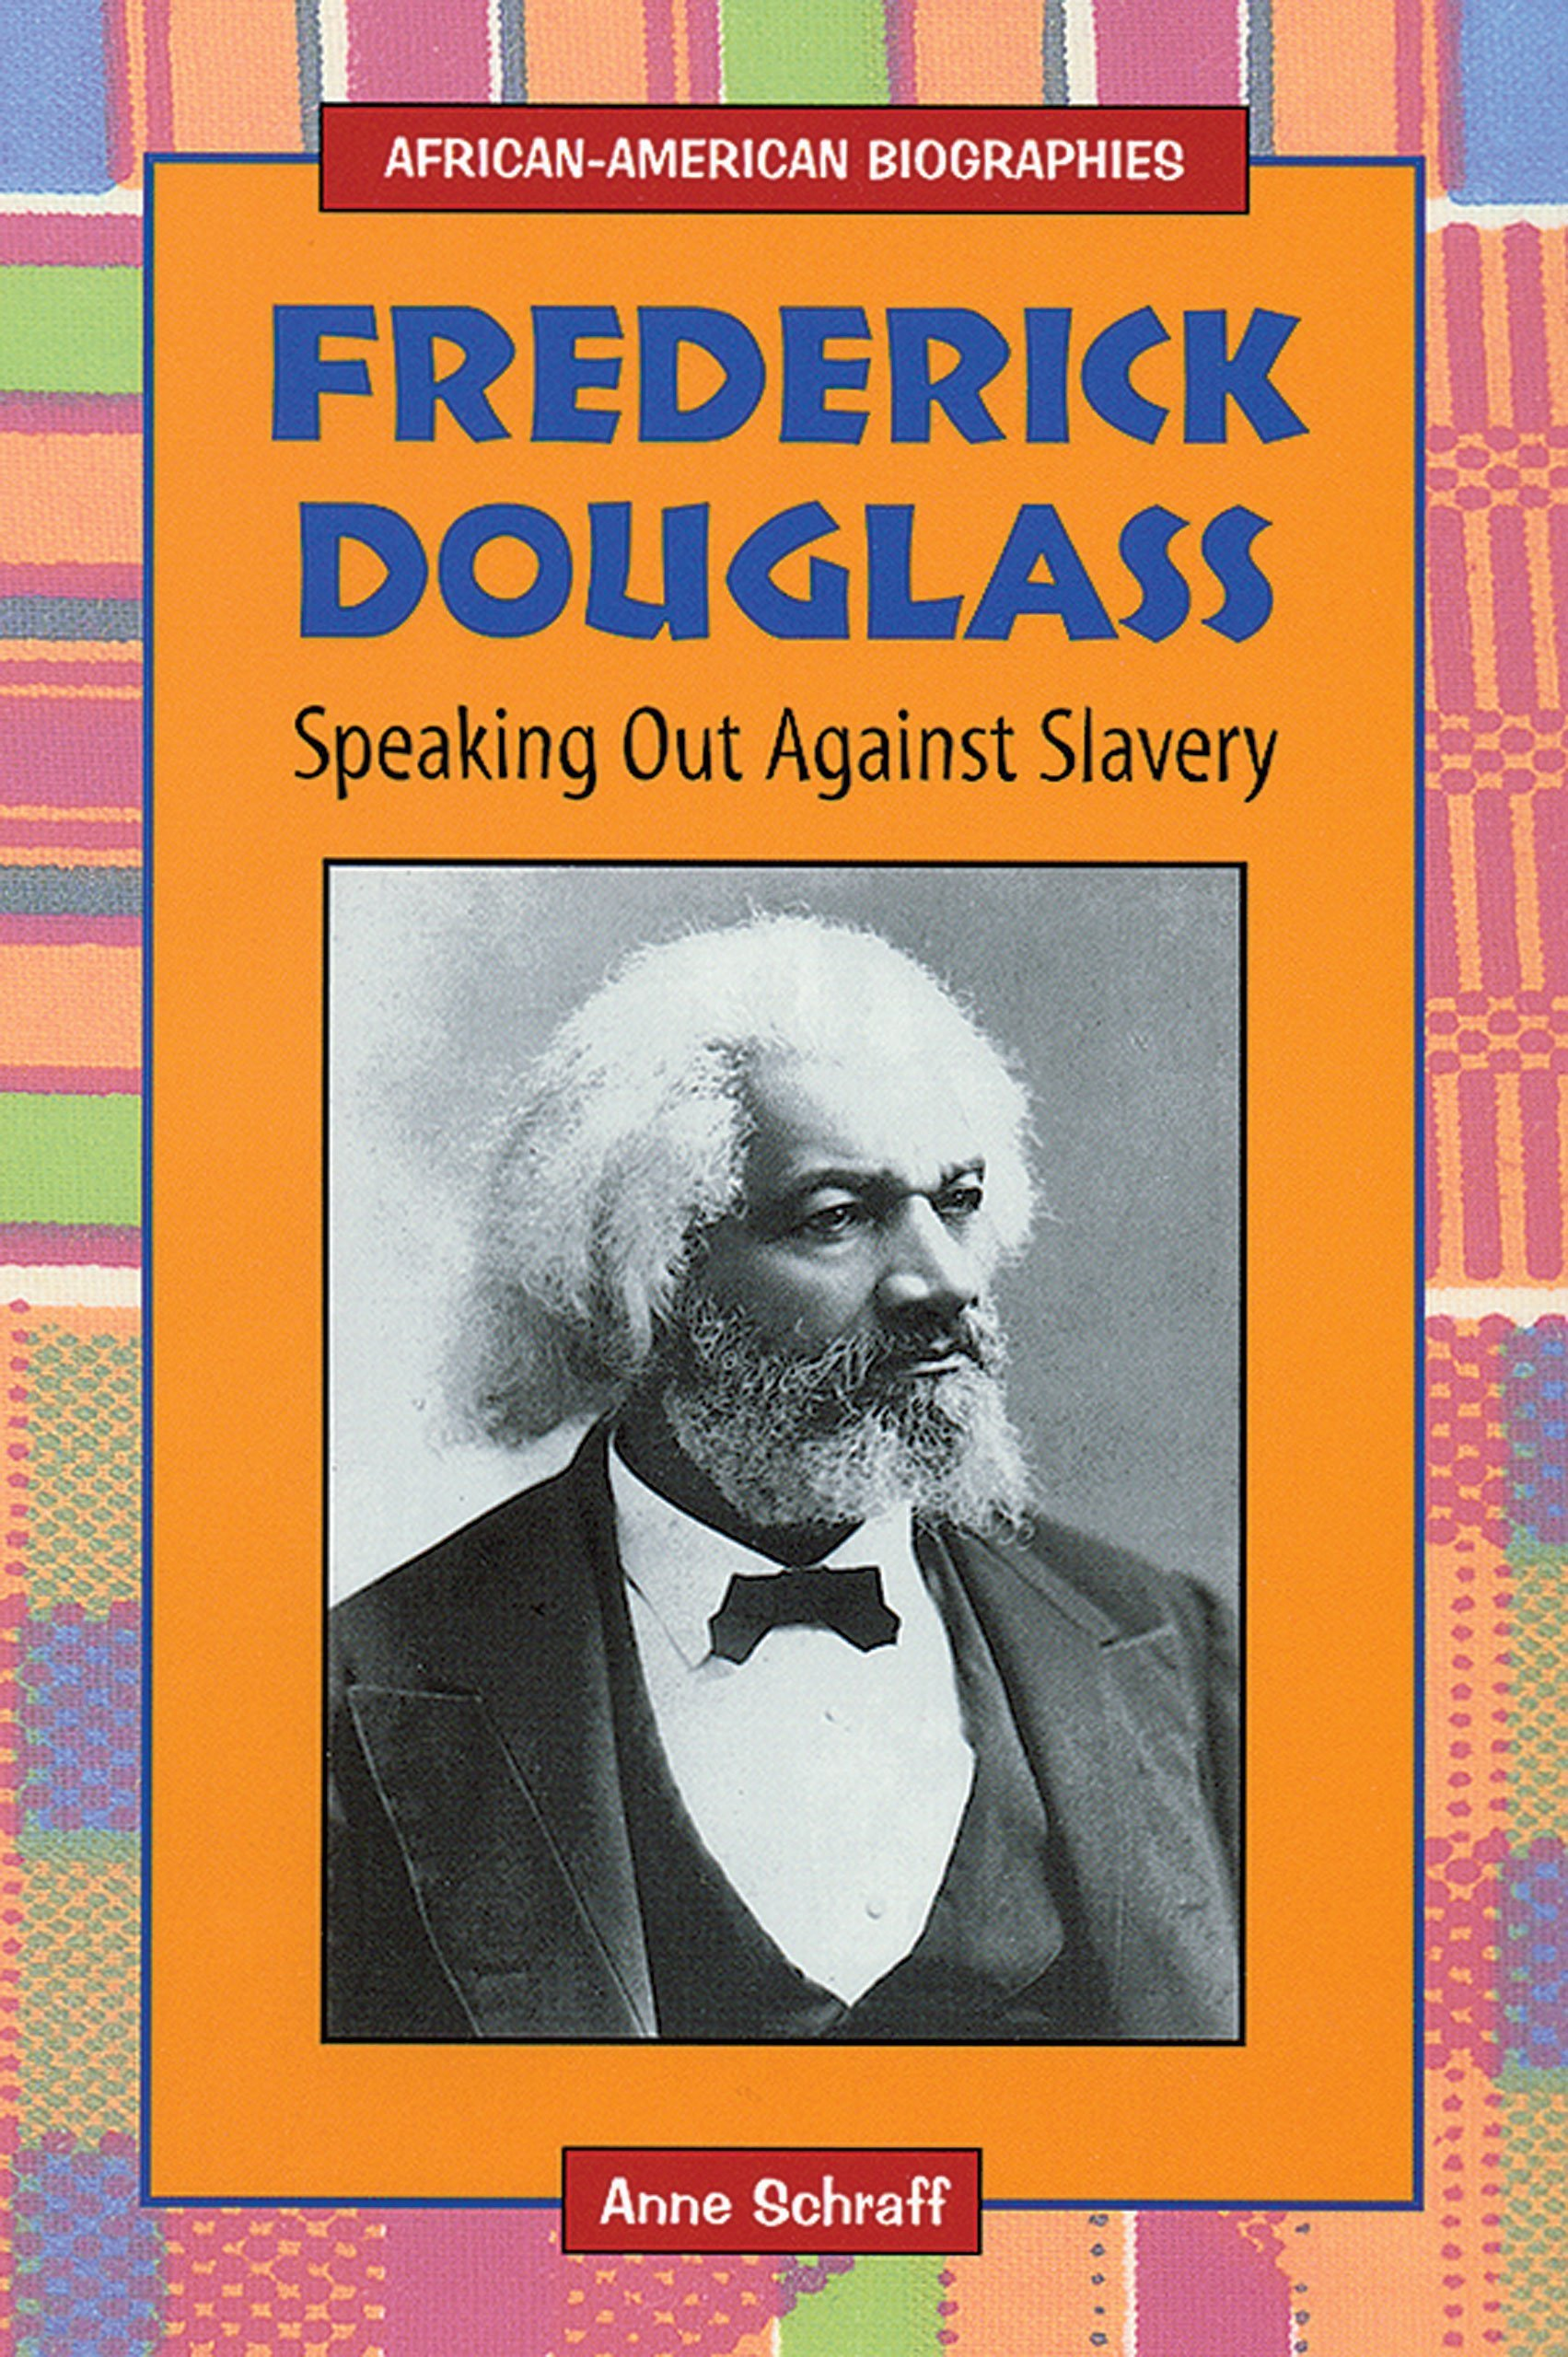 Frederick Douglass: Speaking Out Against Slavery (African-American Biographies) ebook